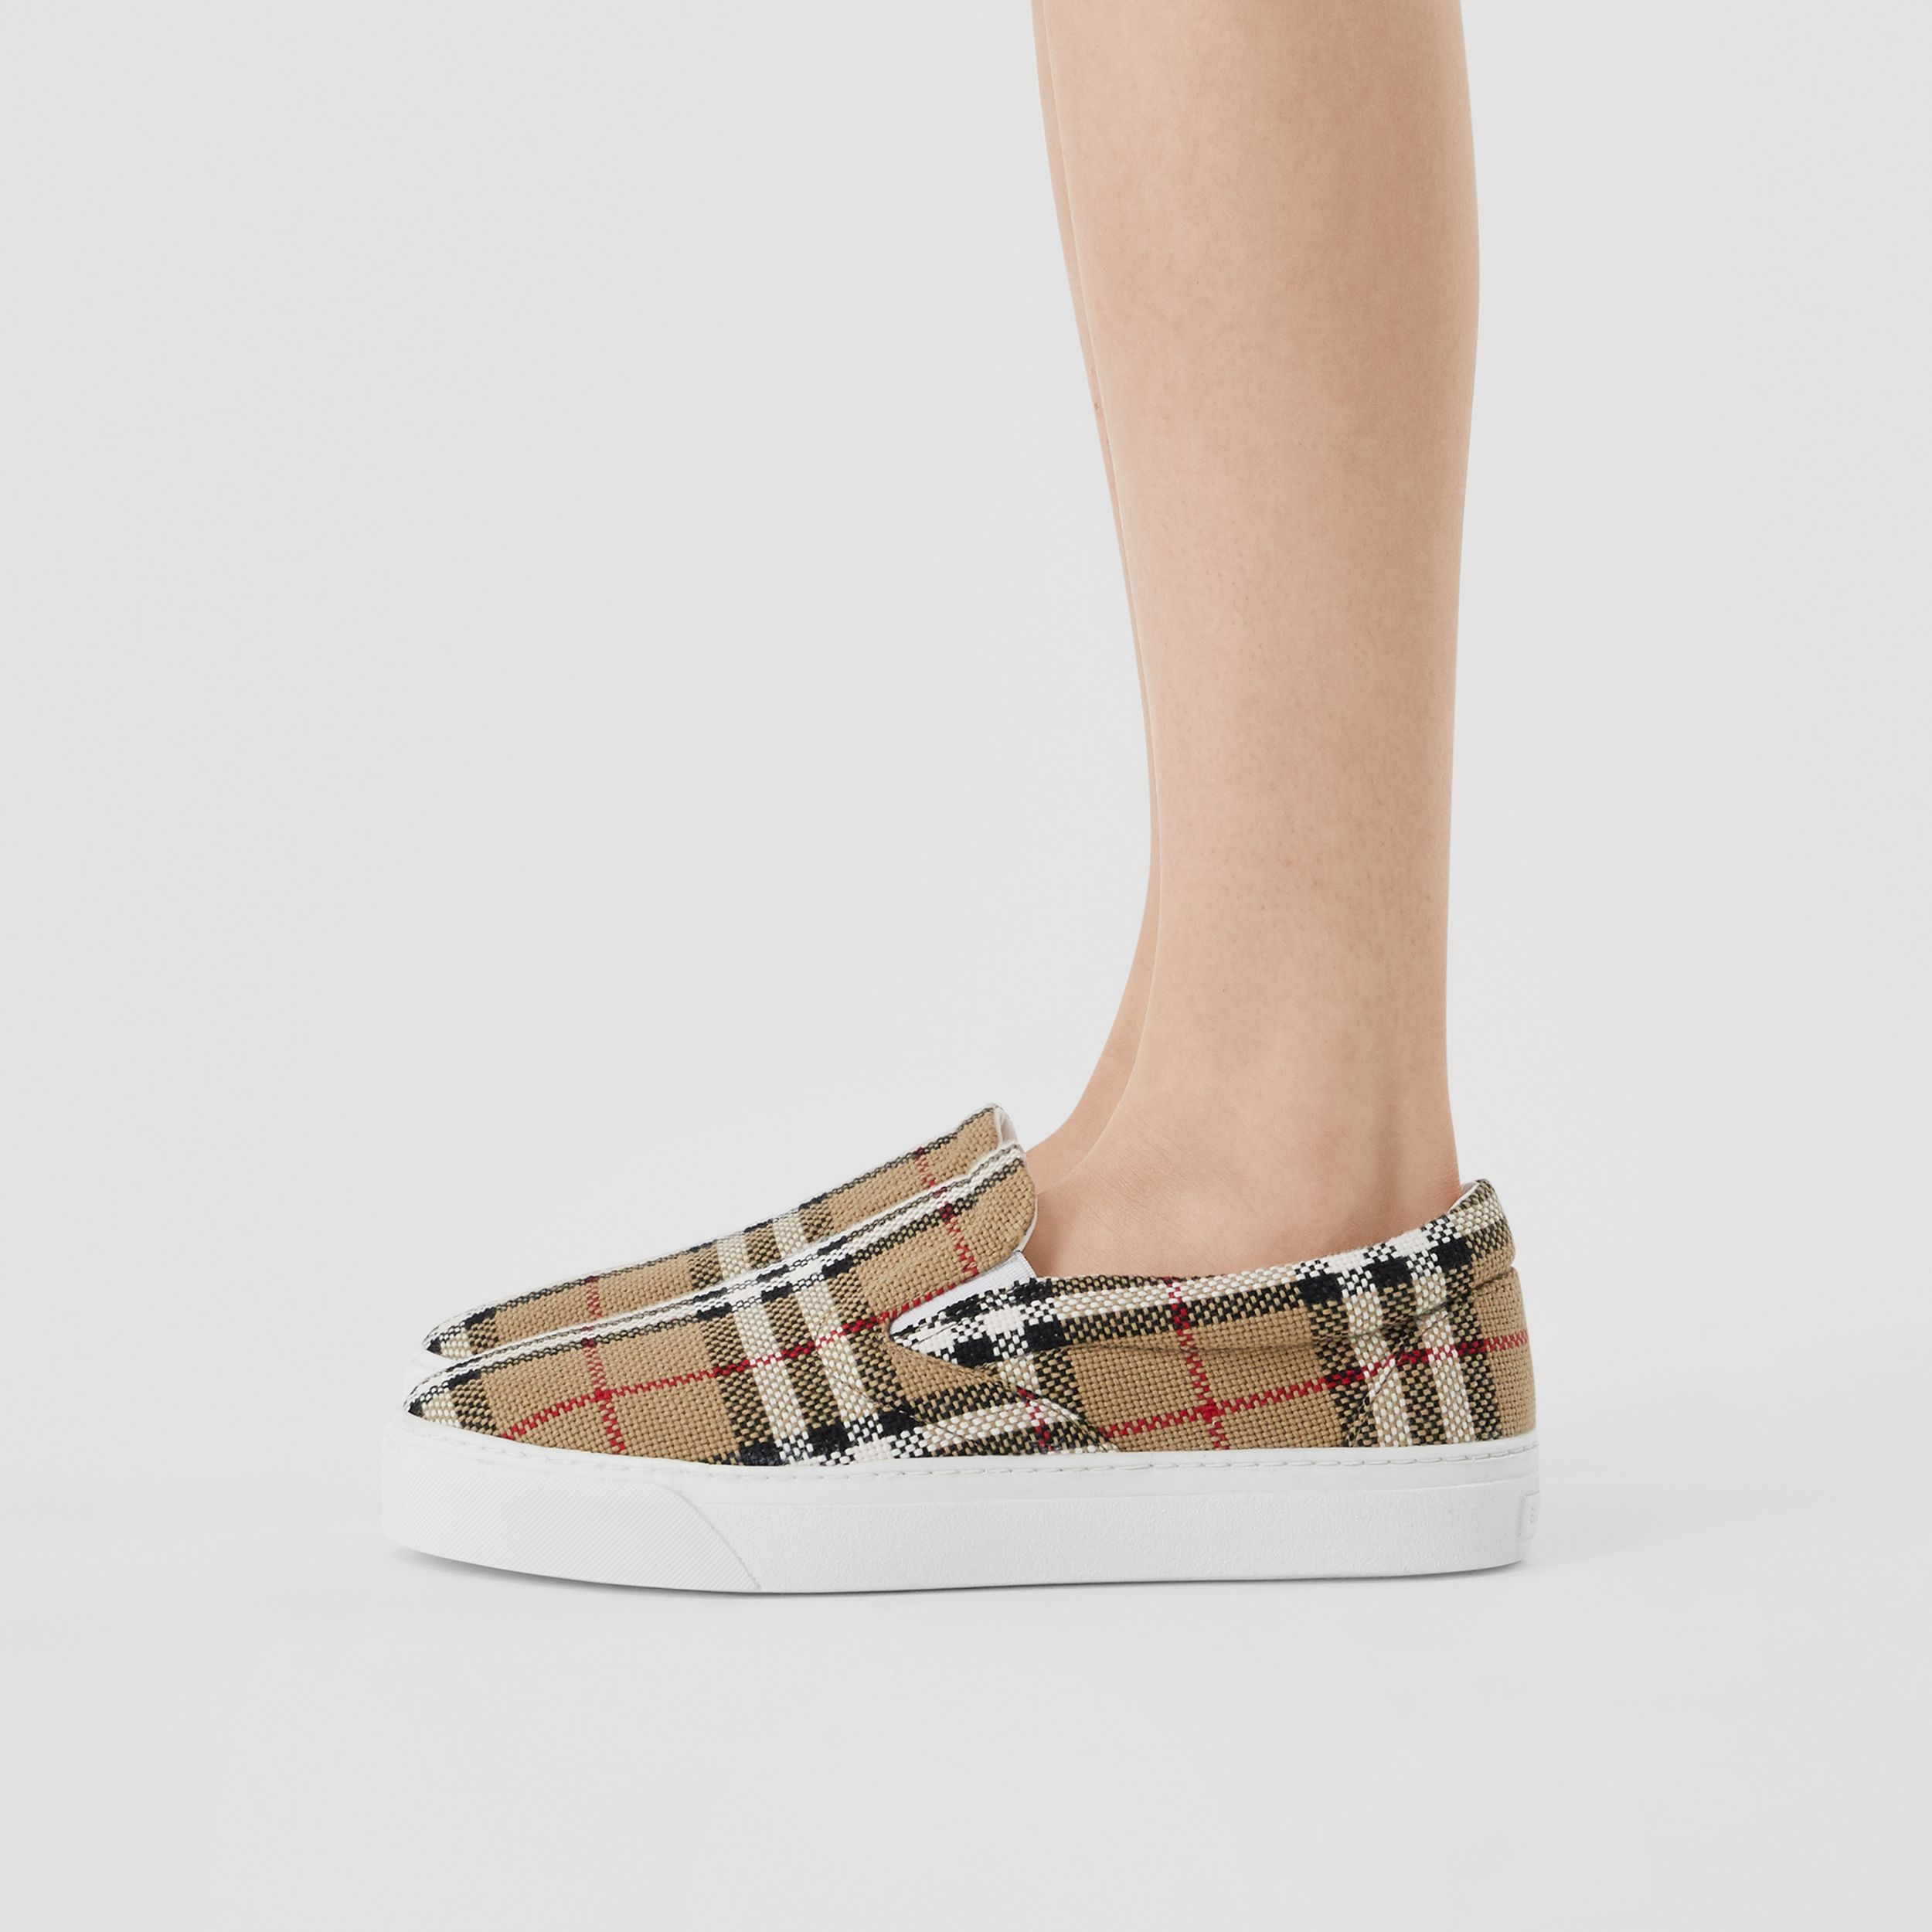 Bio-based Sole Latticed Cotton Slip-on Sneakers in Archive Beige - Women | Burberry - 3